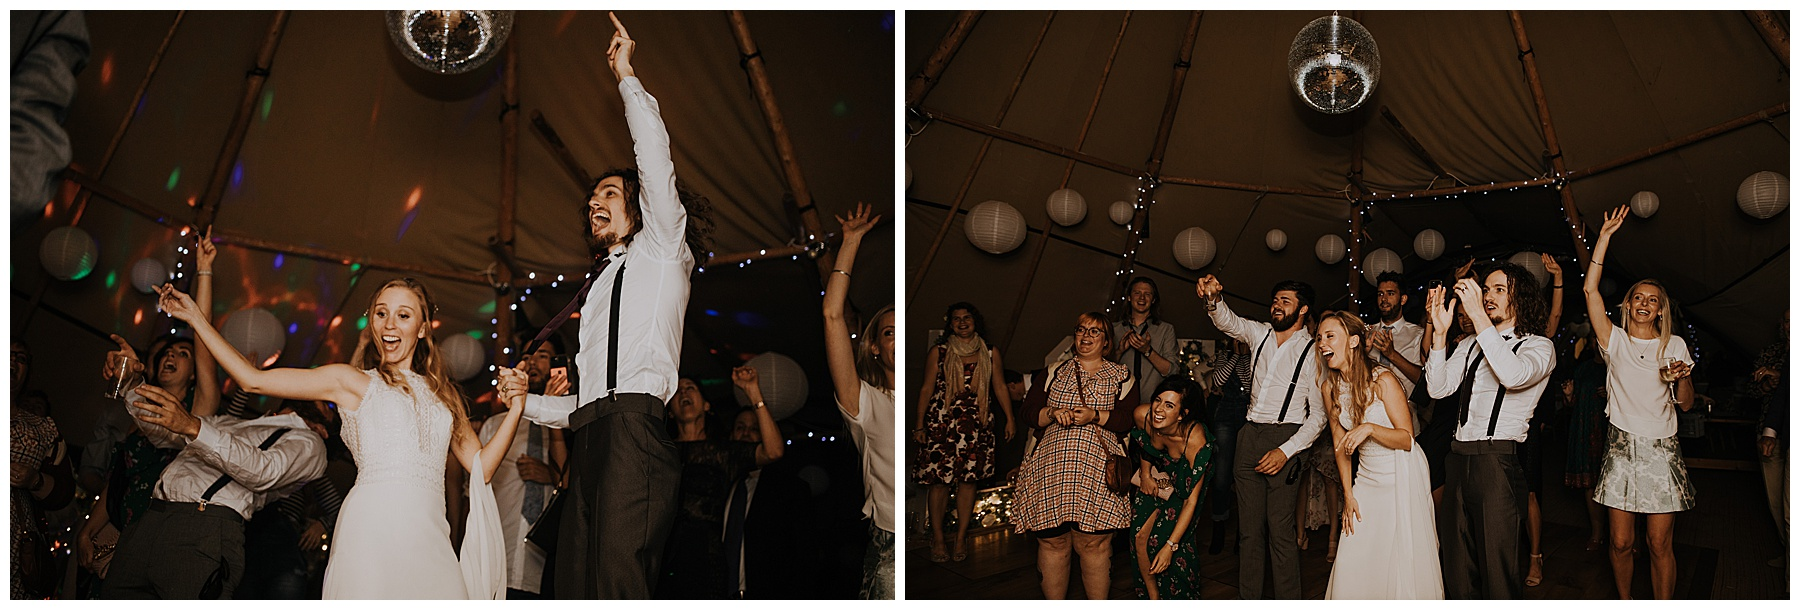 bride and groom dance under the disco ball.